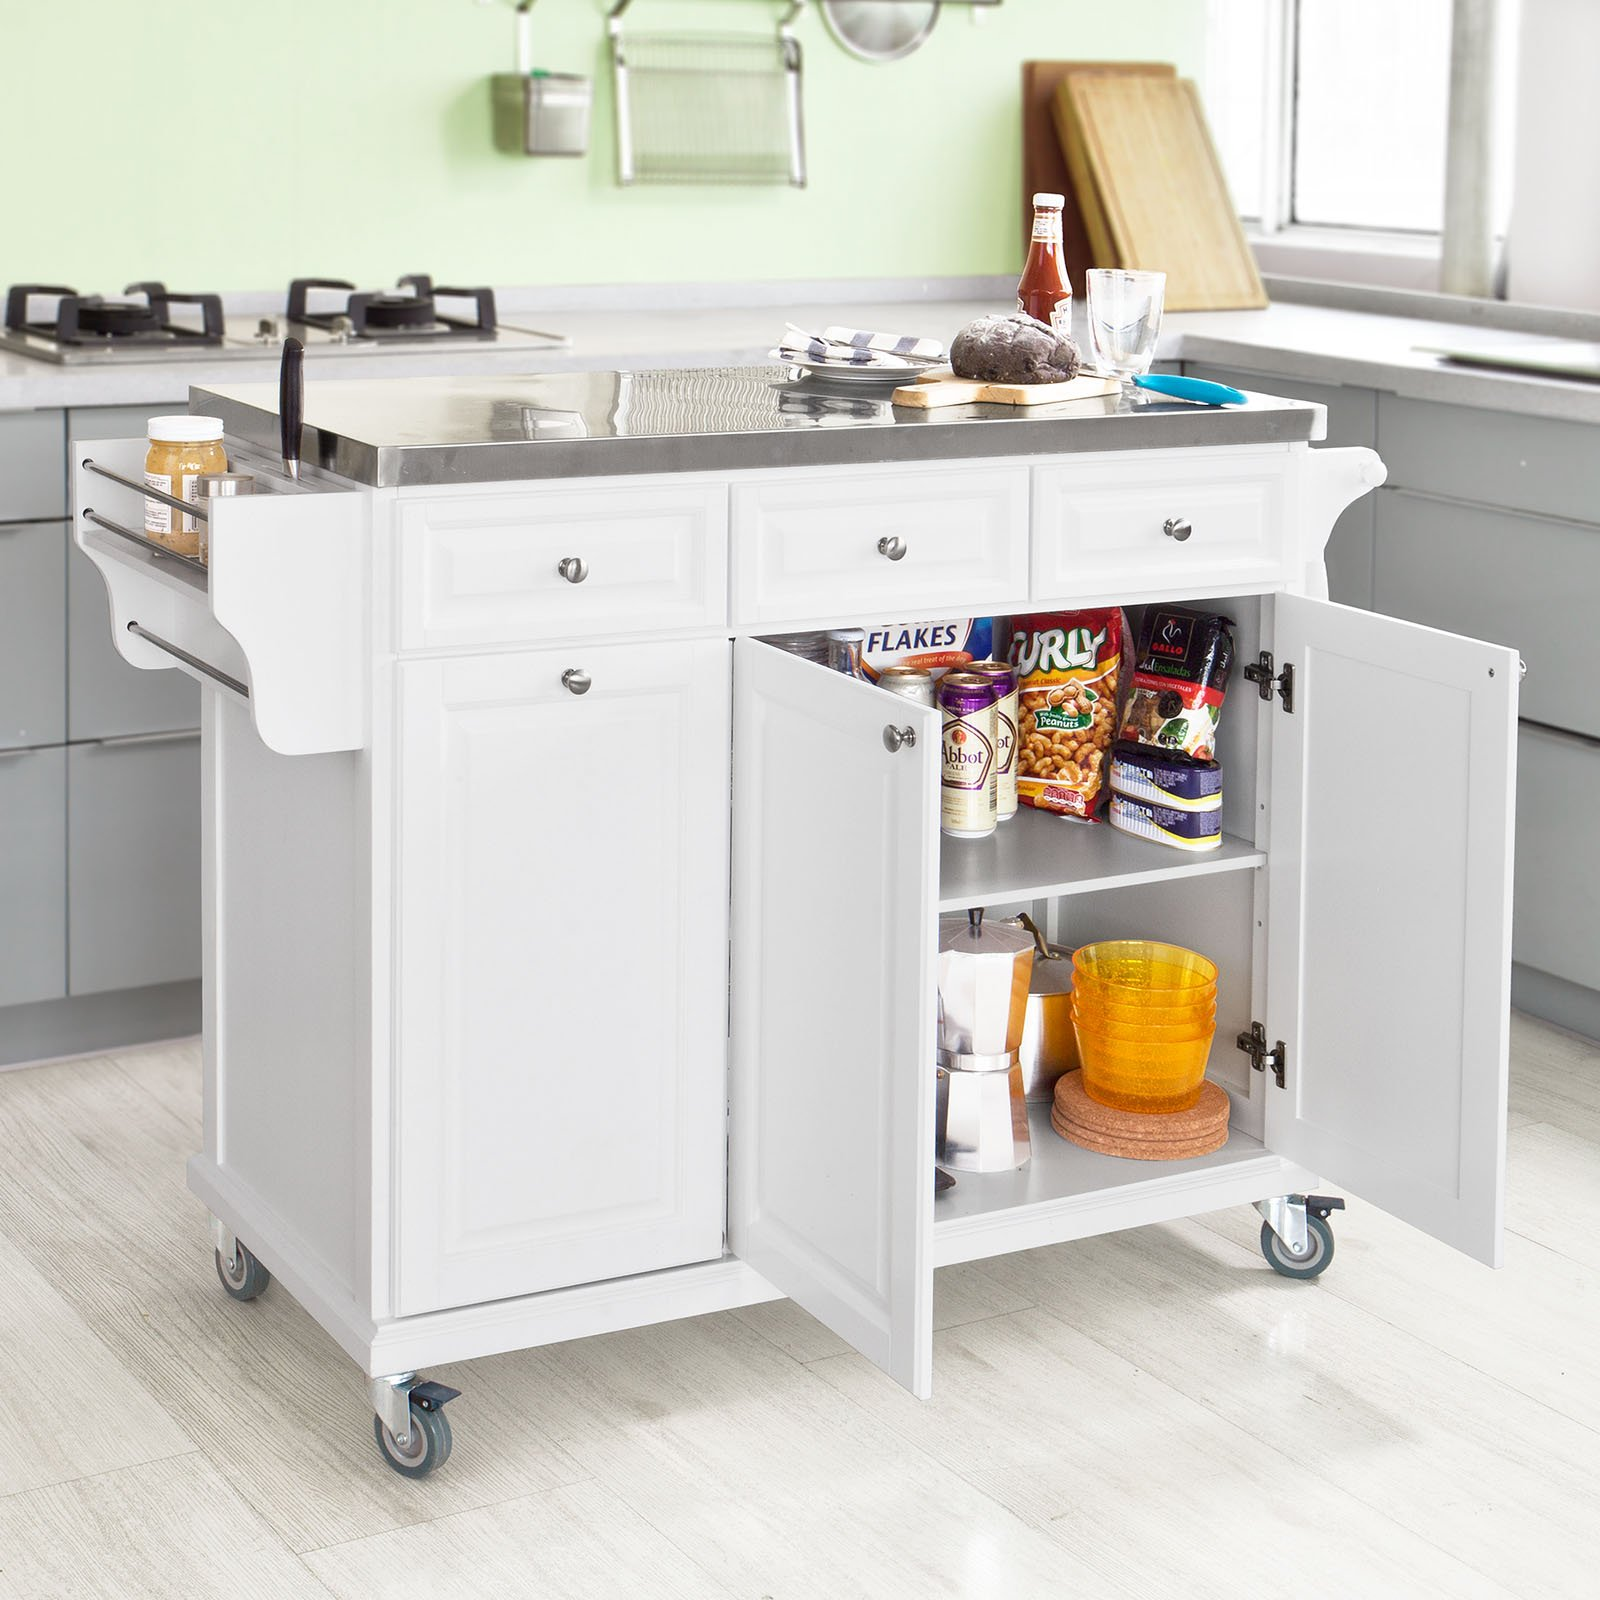 SoBuy?? White Luxury Kitchen Island Storage Trolley Cart, Kitchen Cabinet with Stainless Steel Worktop, FKW33-W by SoBuy by SoBuy (Image #2)